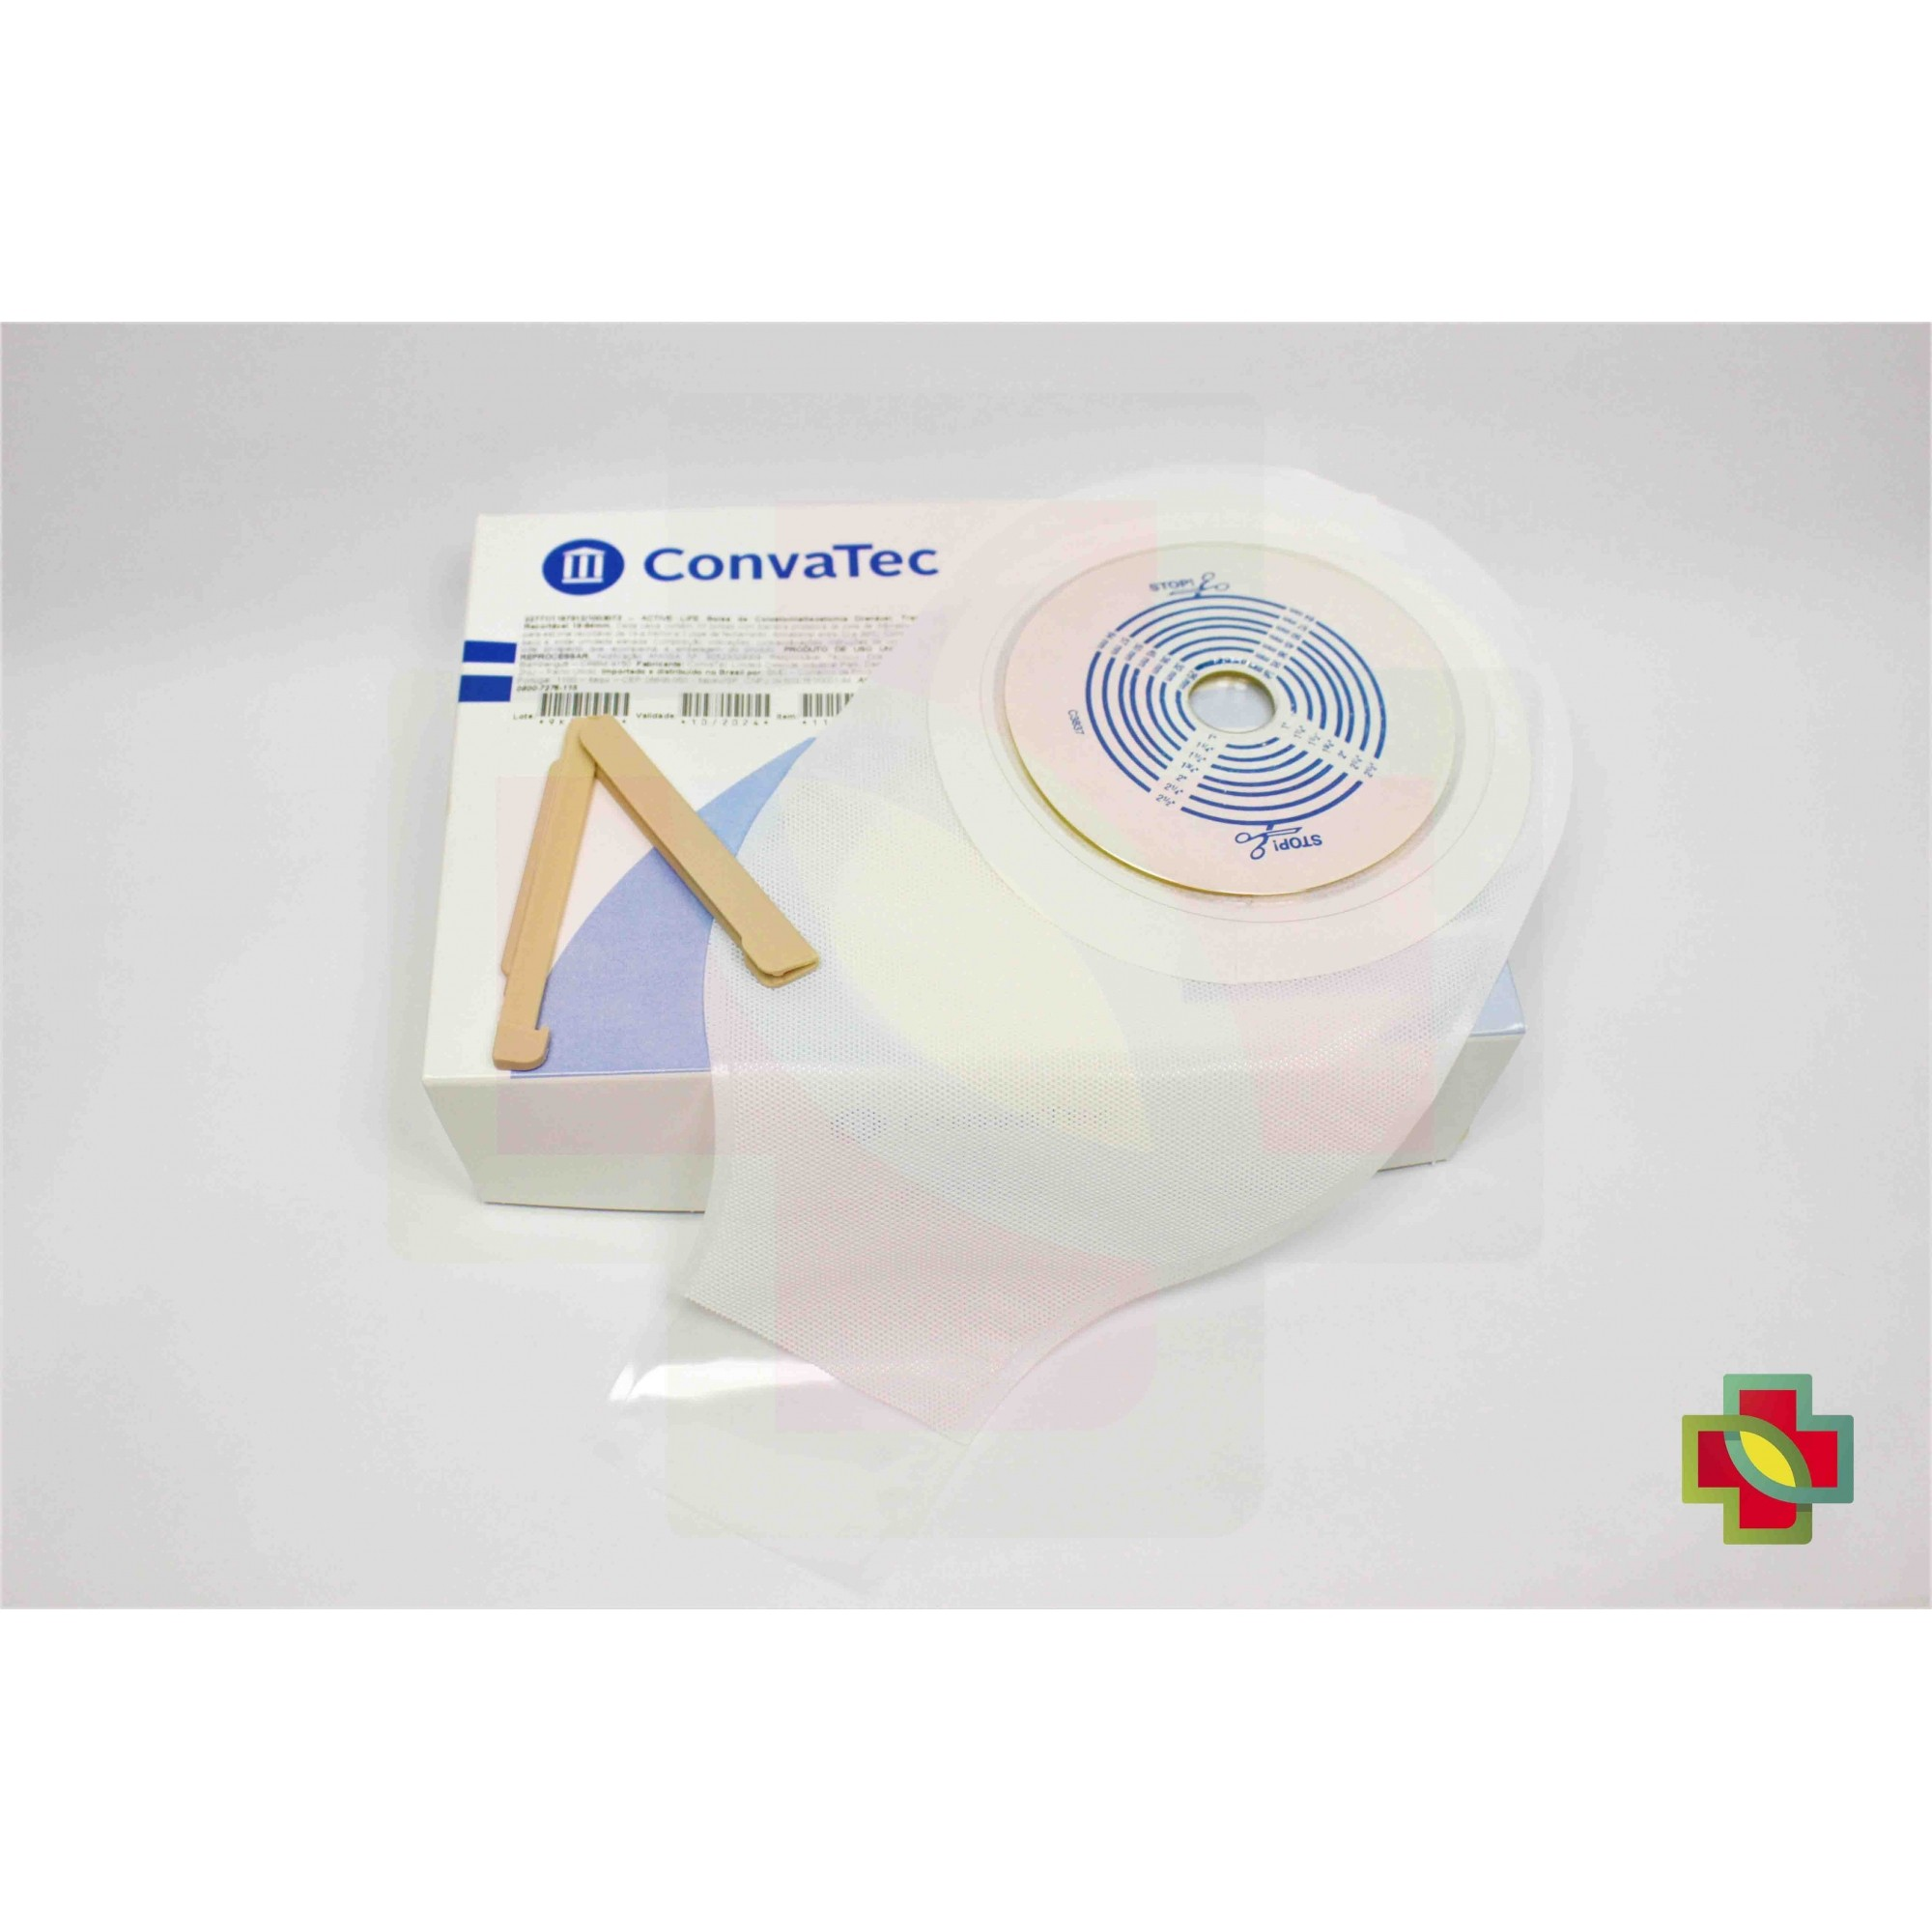 BOLSA DE COLOSTOMIA ACTIVE-LIFE TRANSP 19/64MM - CONVATEC